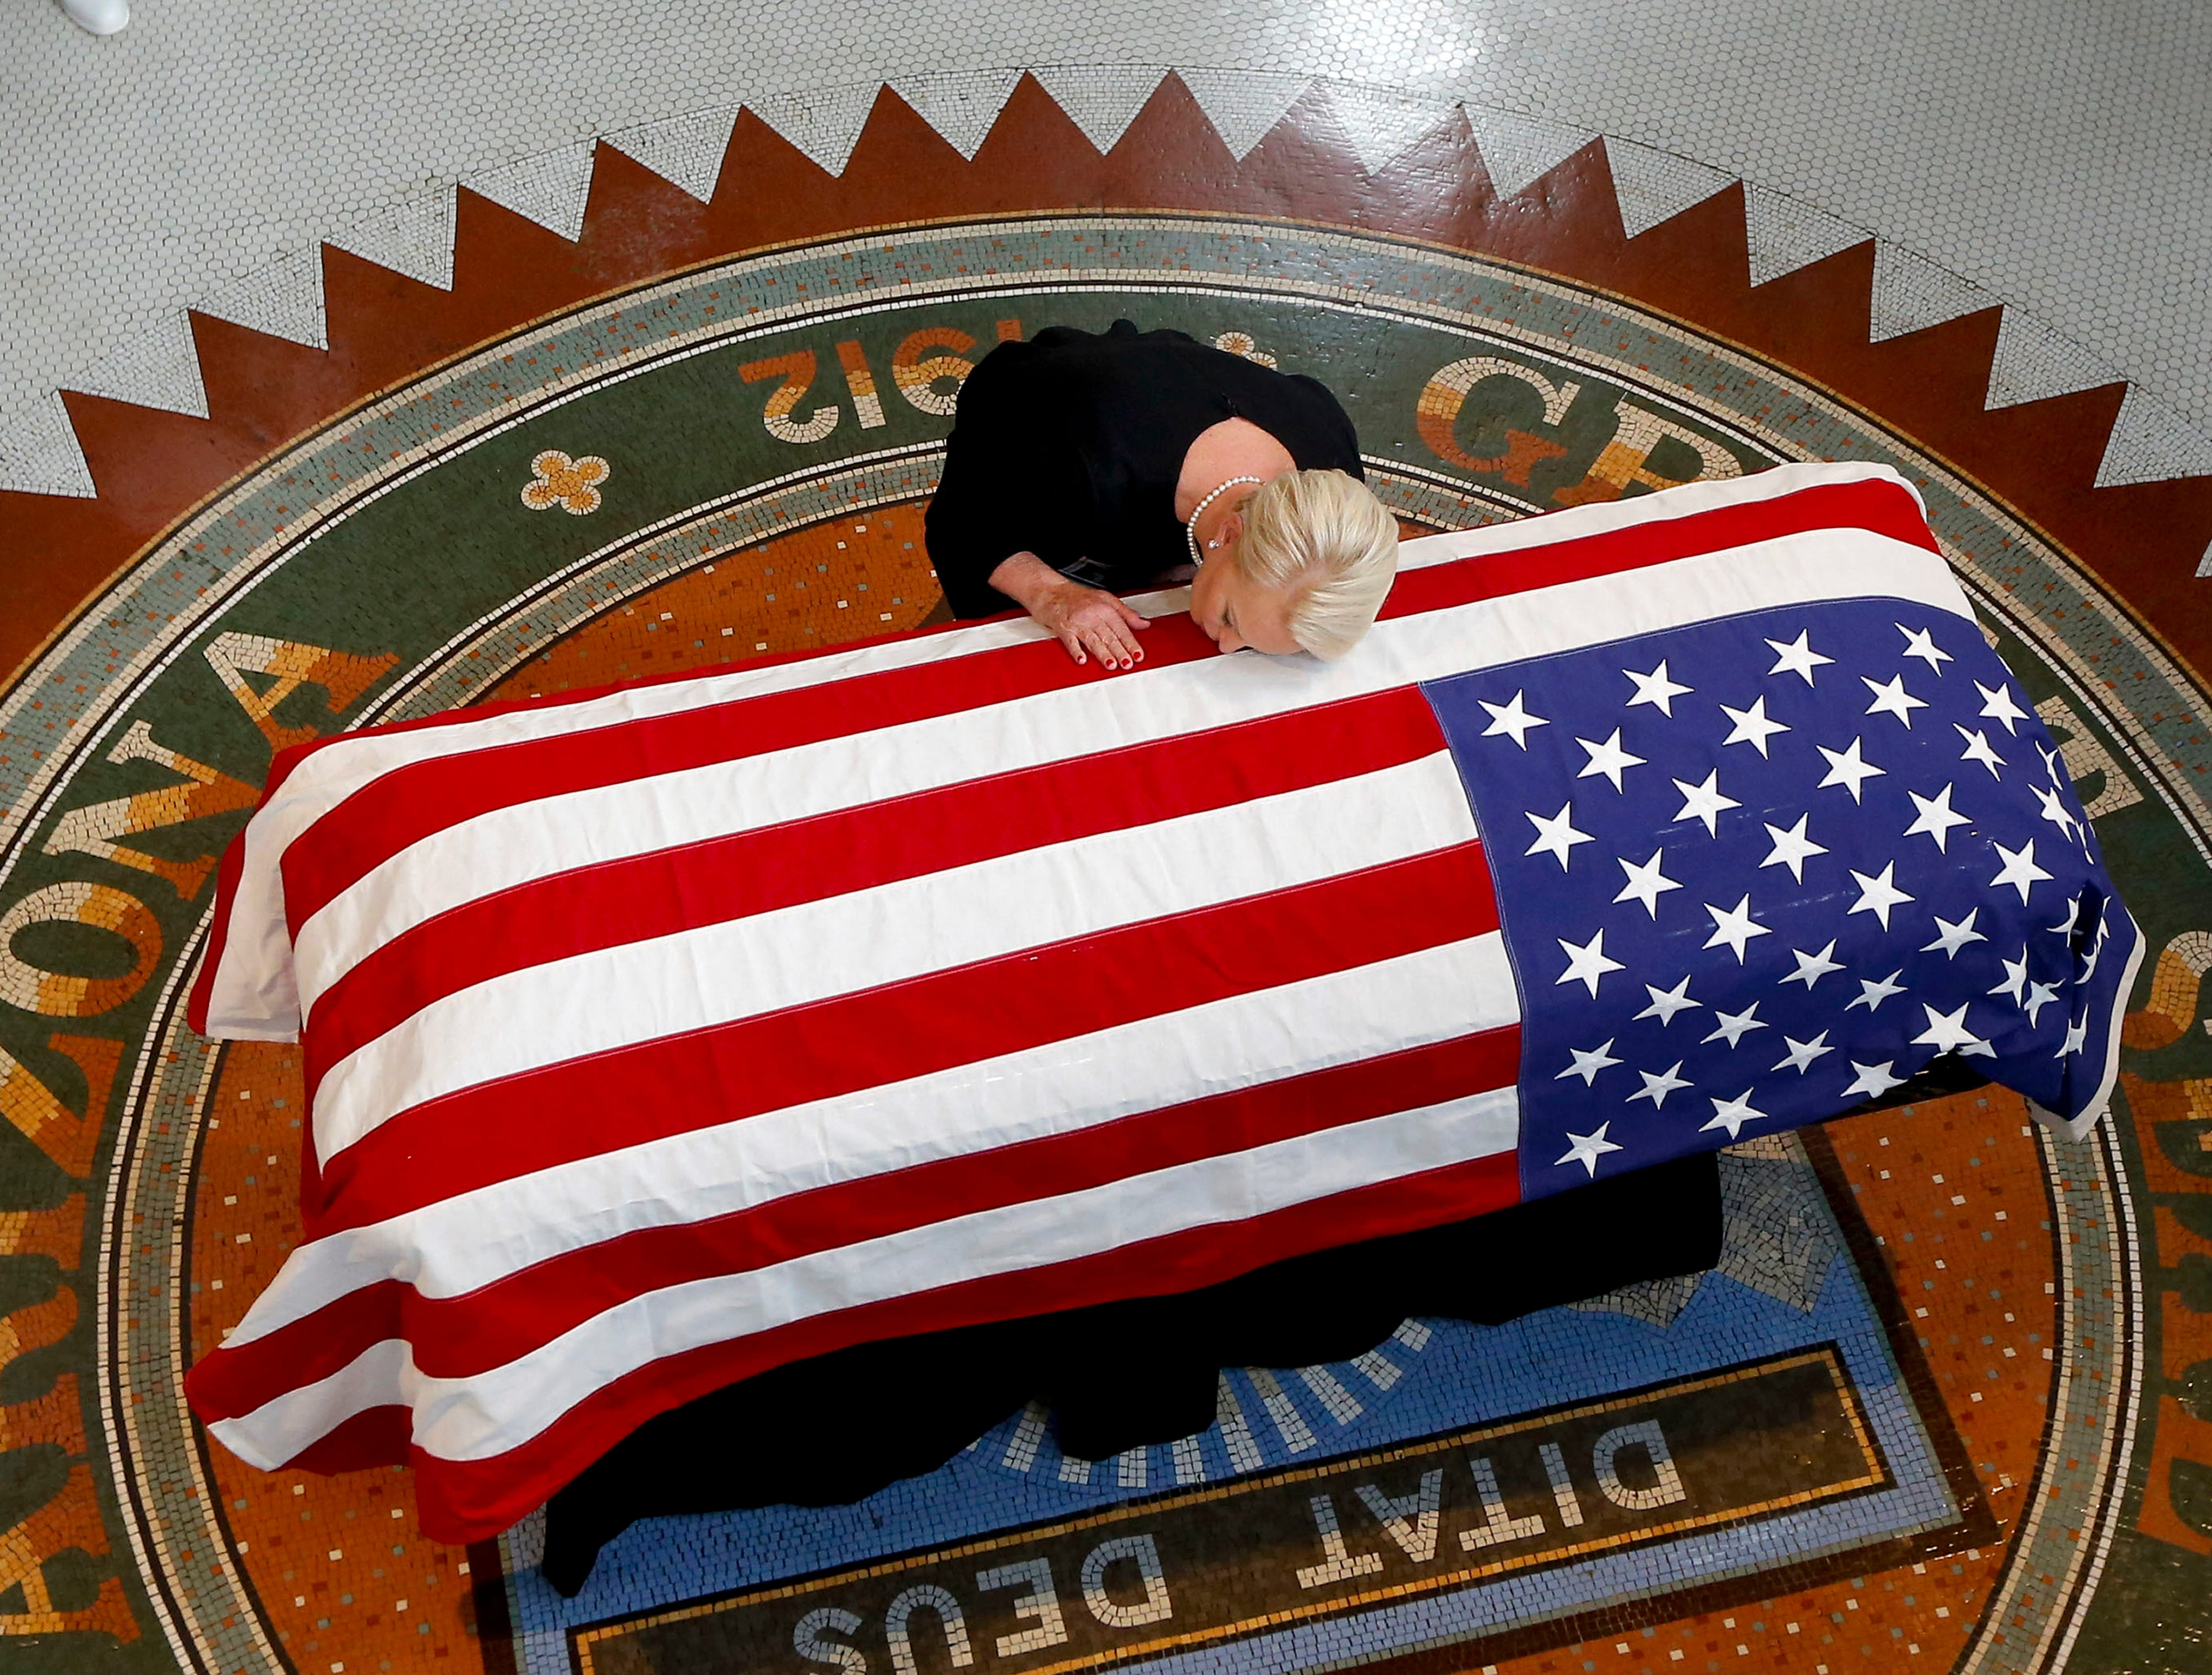 Cindy McCain, wife of Sen. John McCain, R-Ariz., rests her head on his casket during a memorial service at the Arizona Capitol in Phoenix on Aug. 29, 2018.